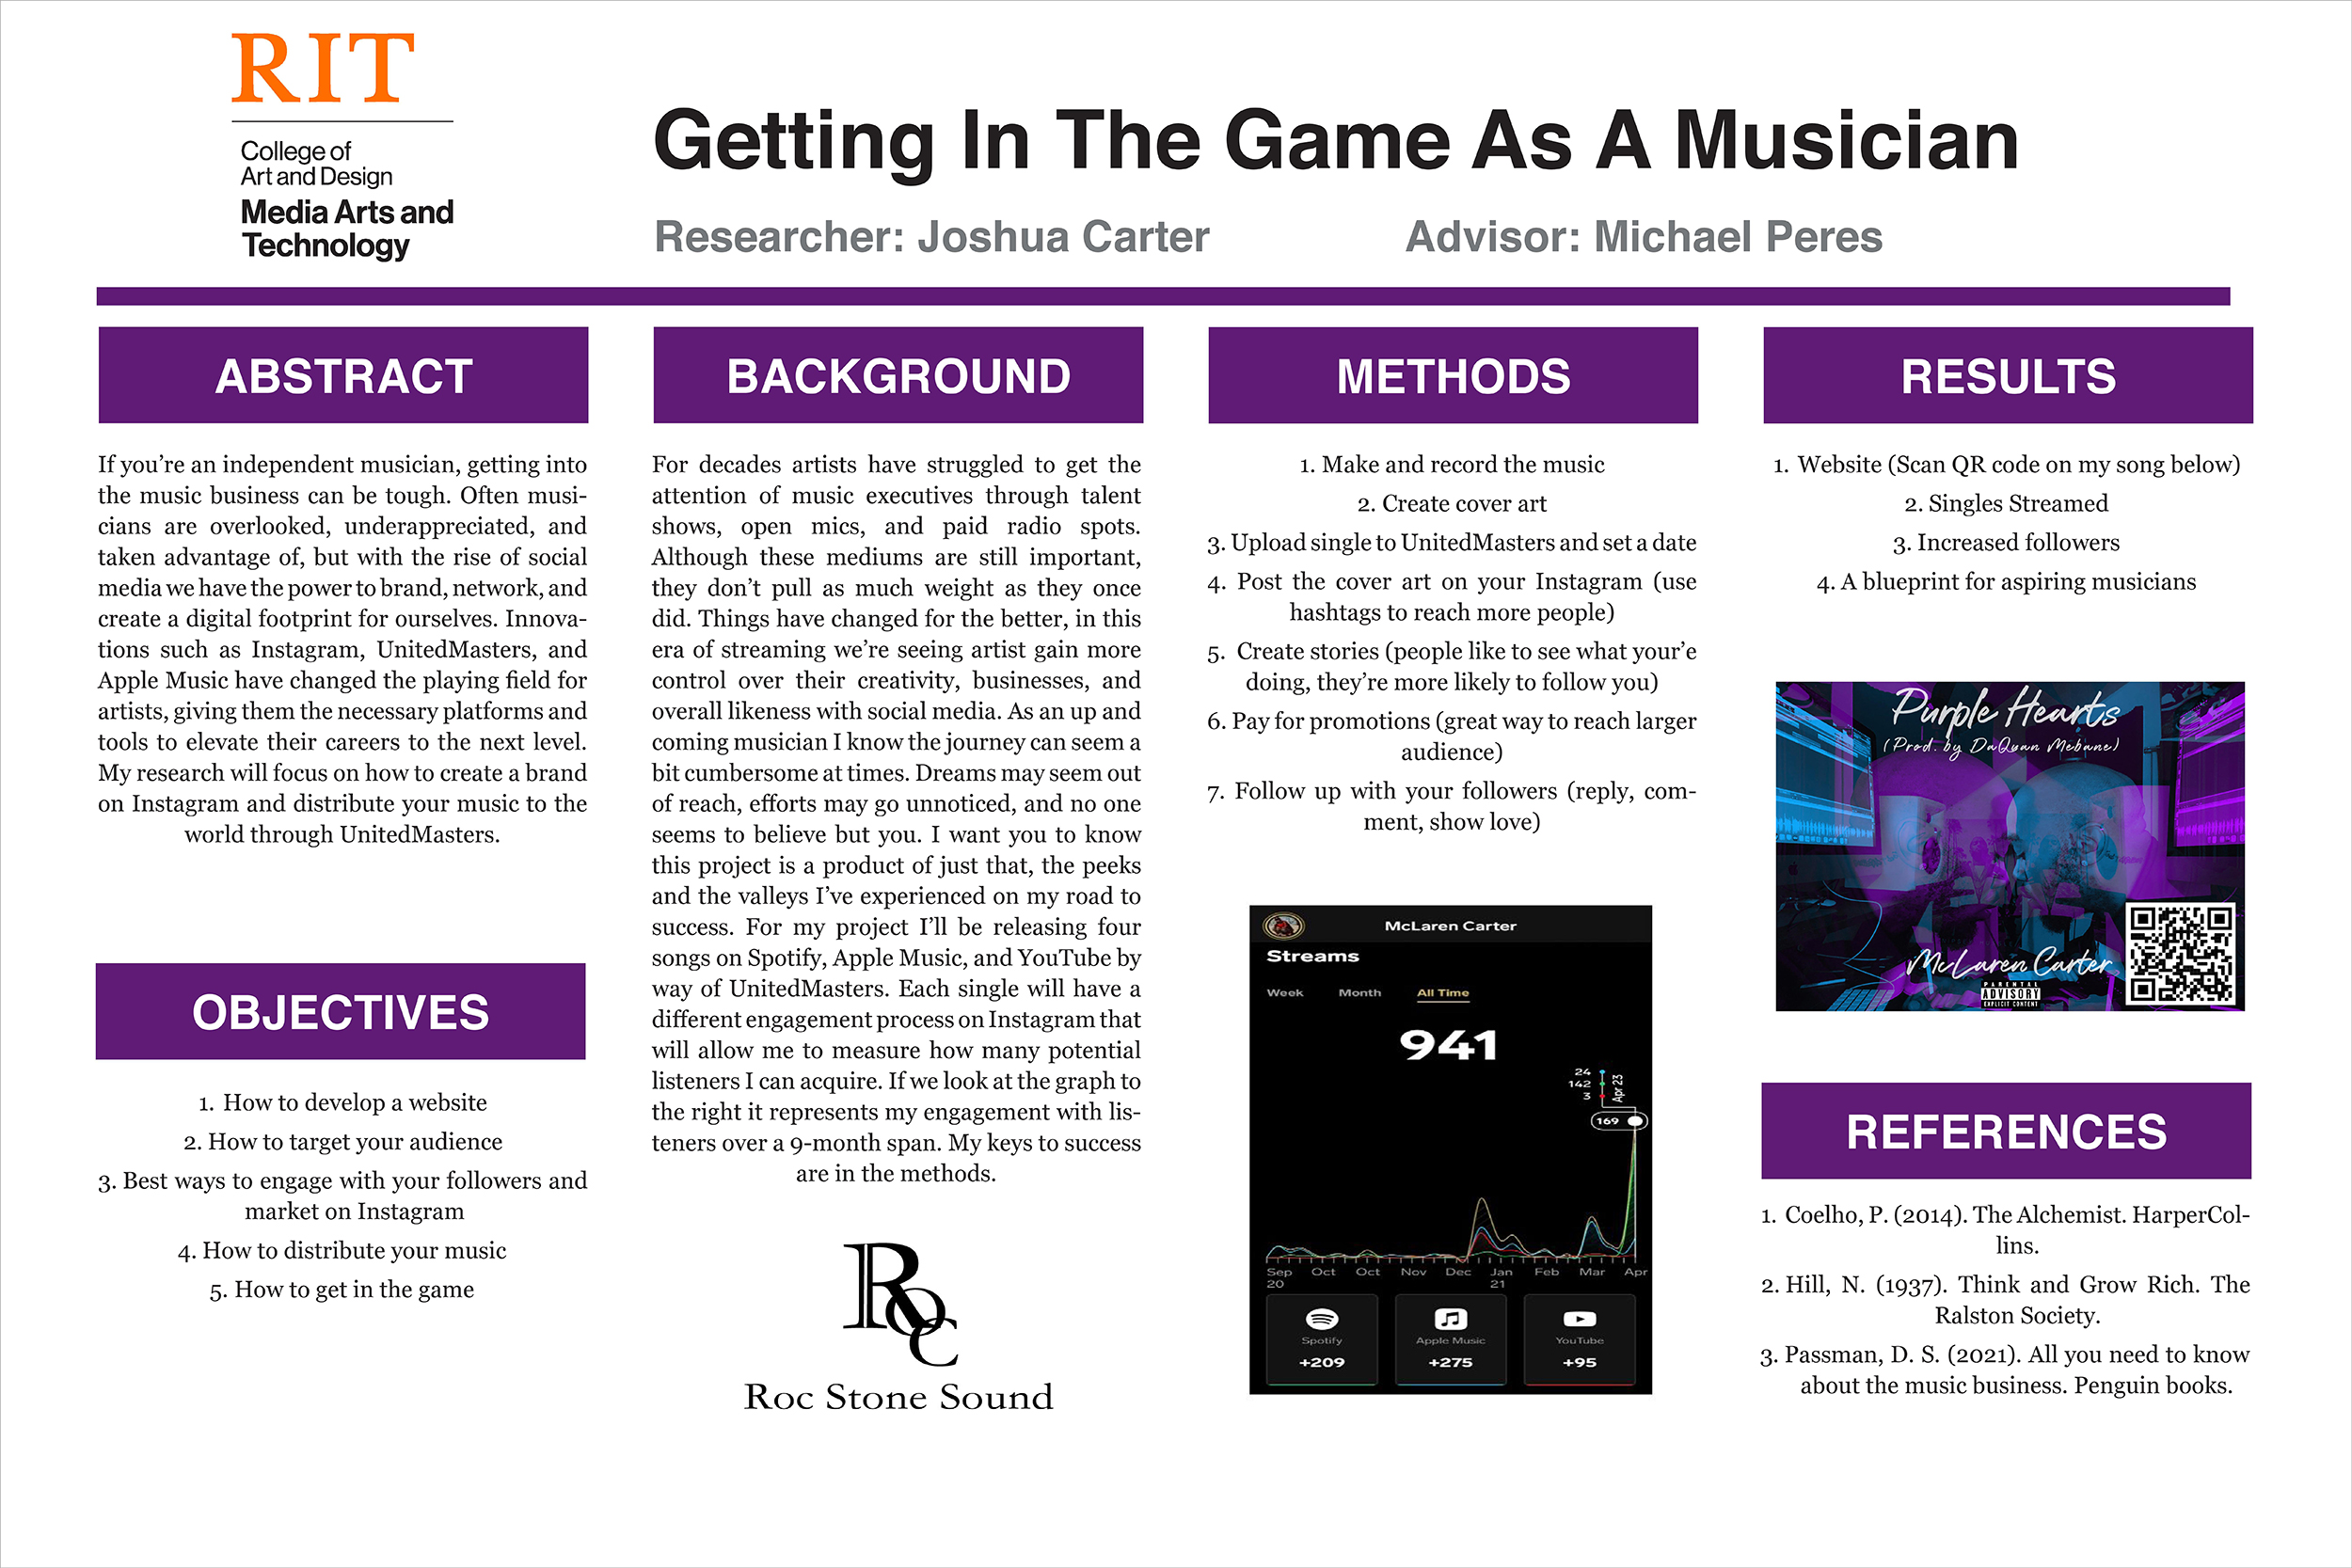 A poster that outlines the workflow of becoming a successful independent musician.